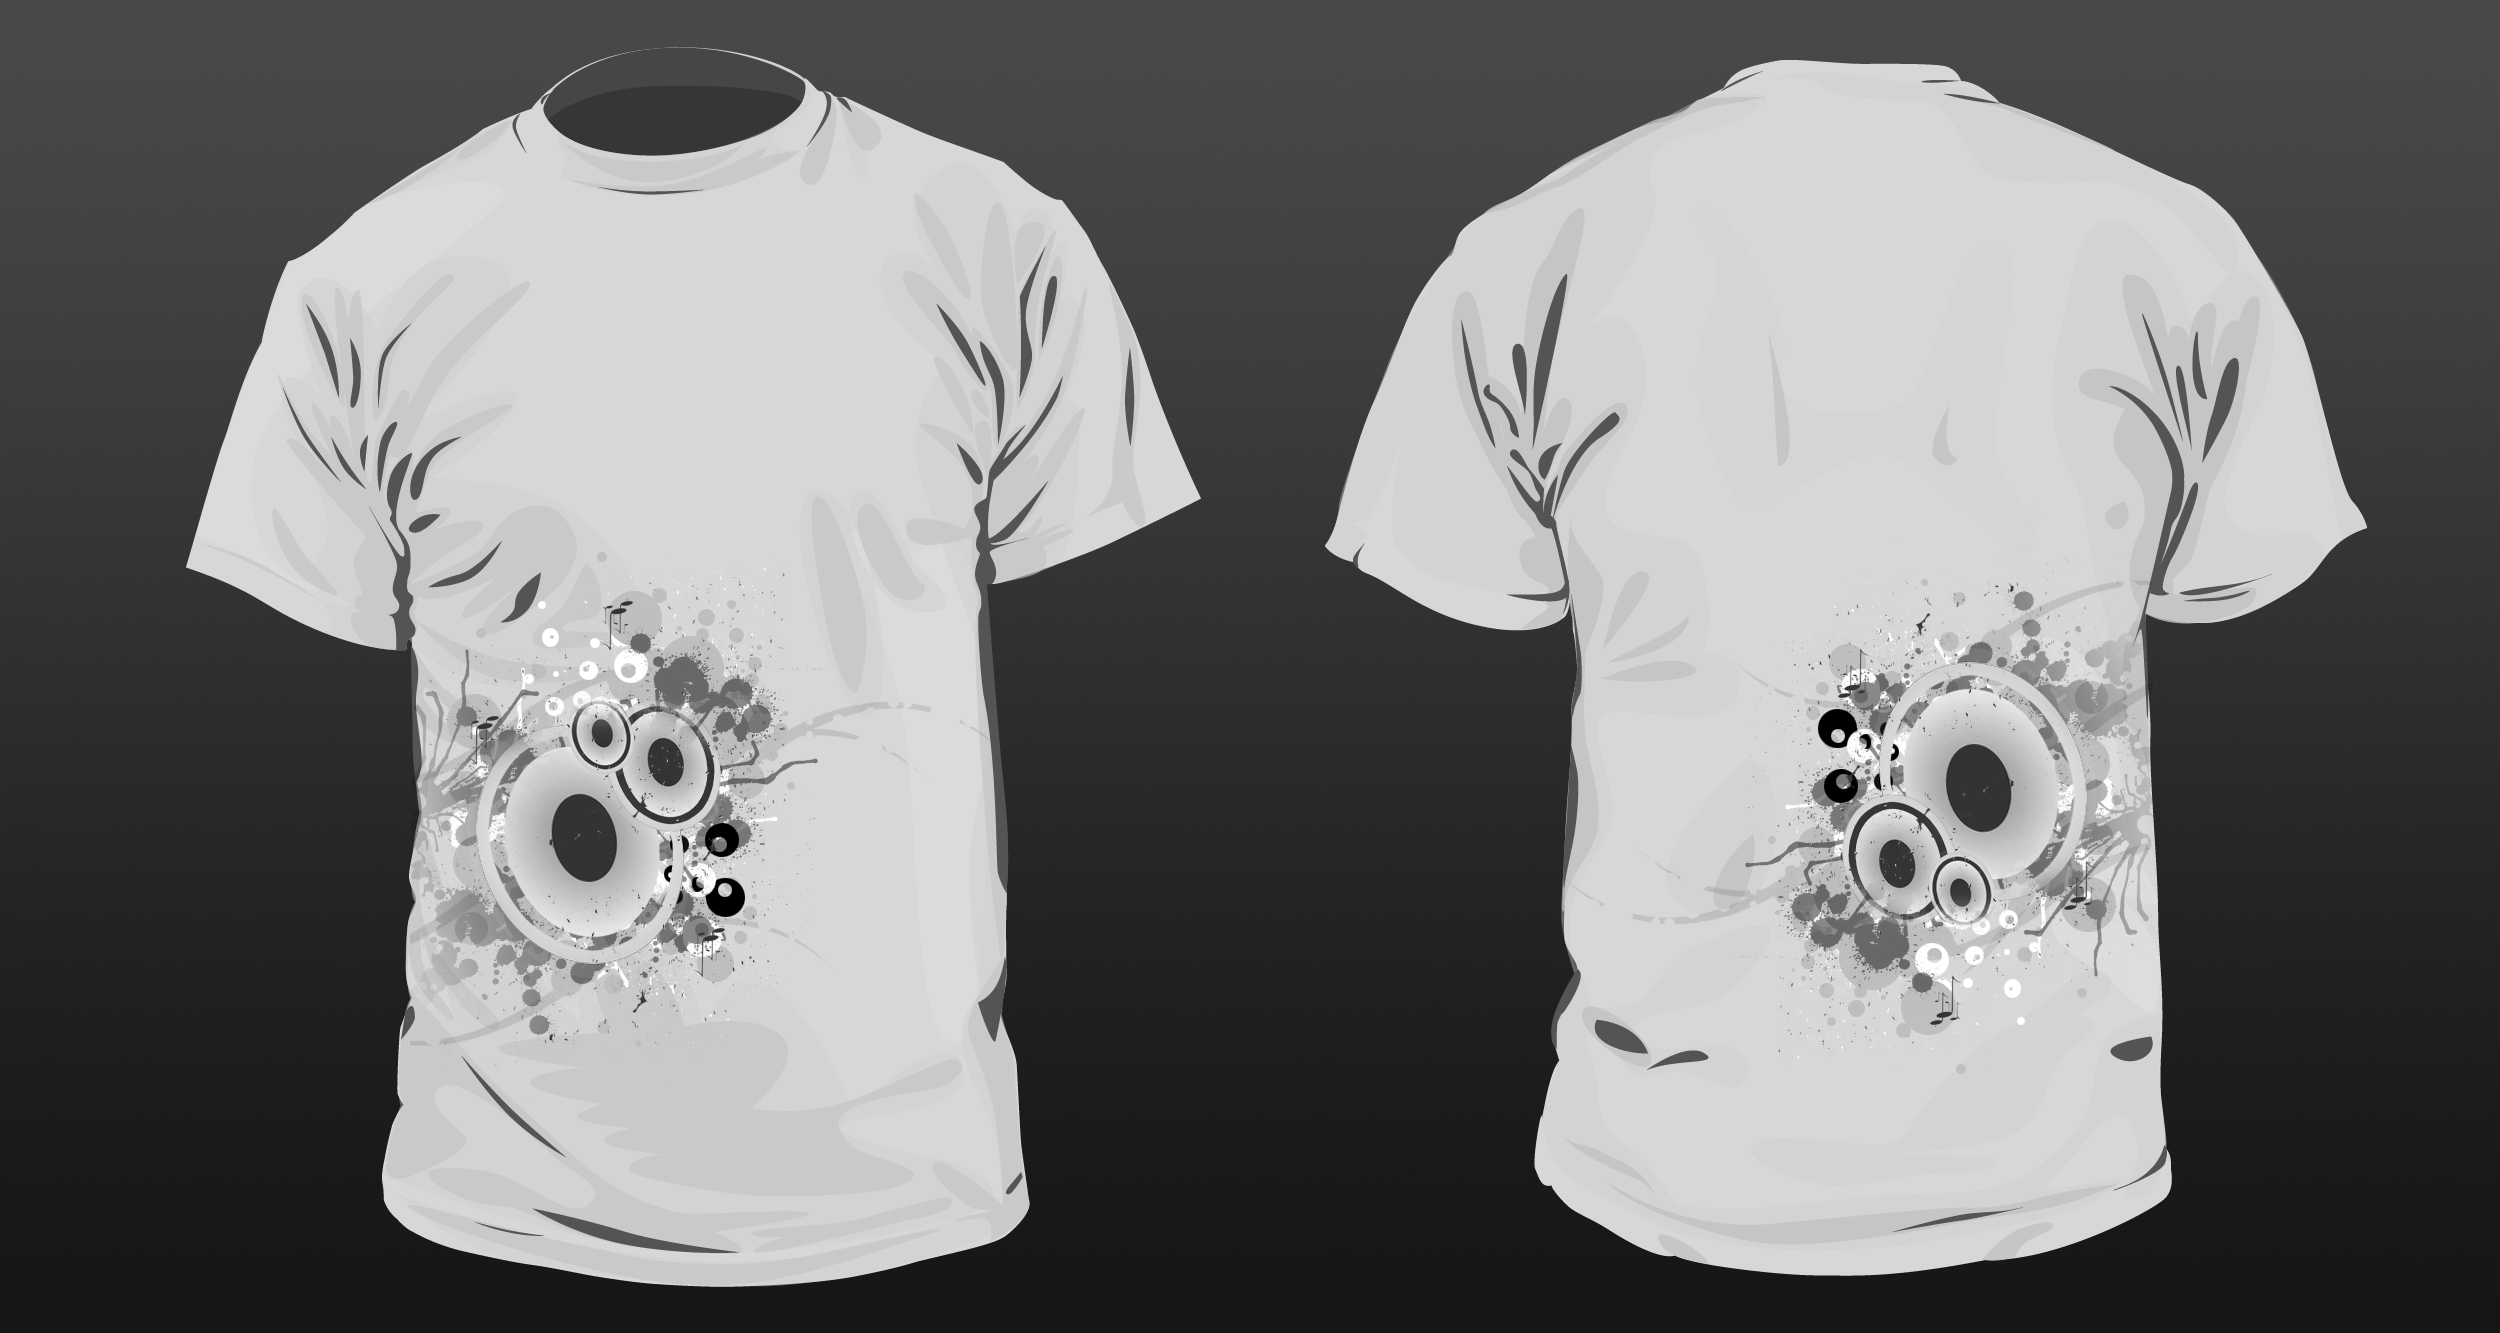 Line Art T Shirt Design : Creativity tshirt design by gkgfx on deviantart